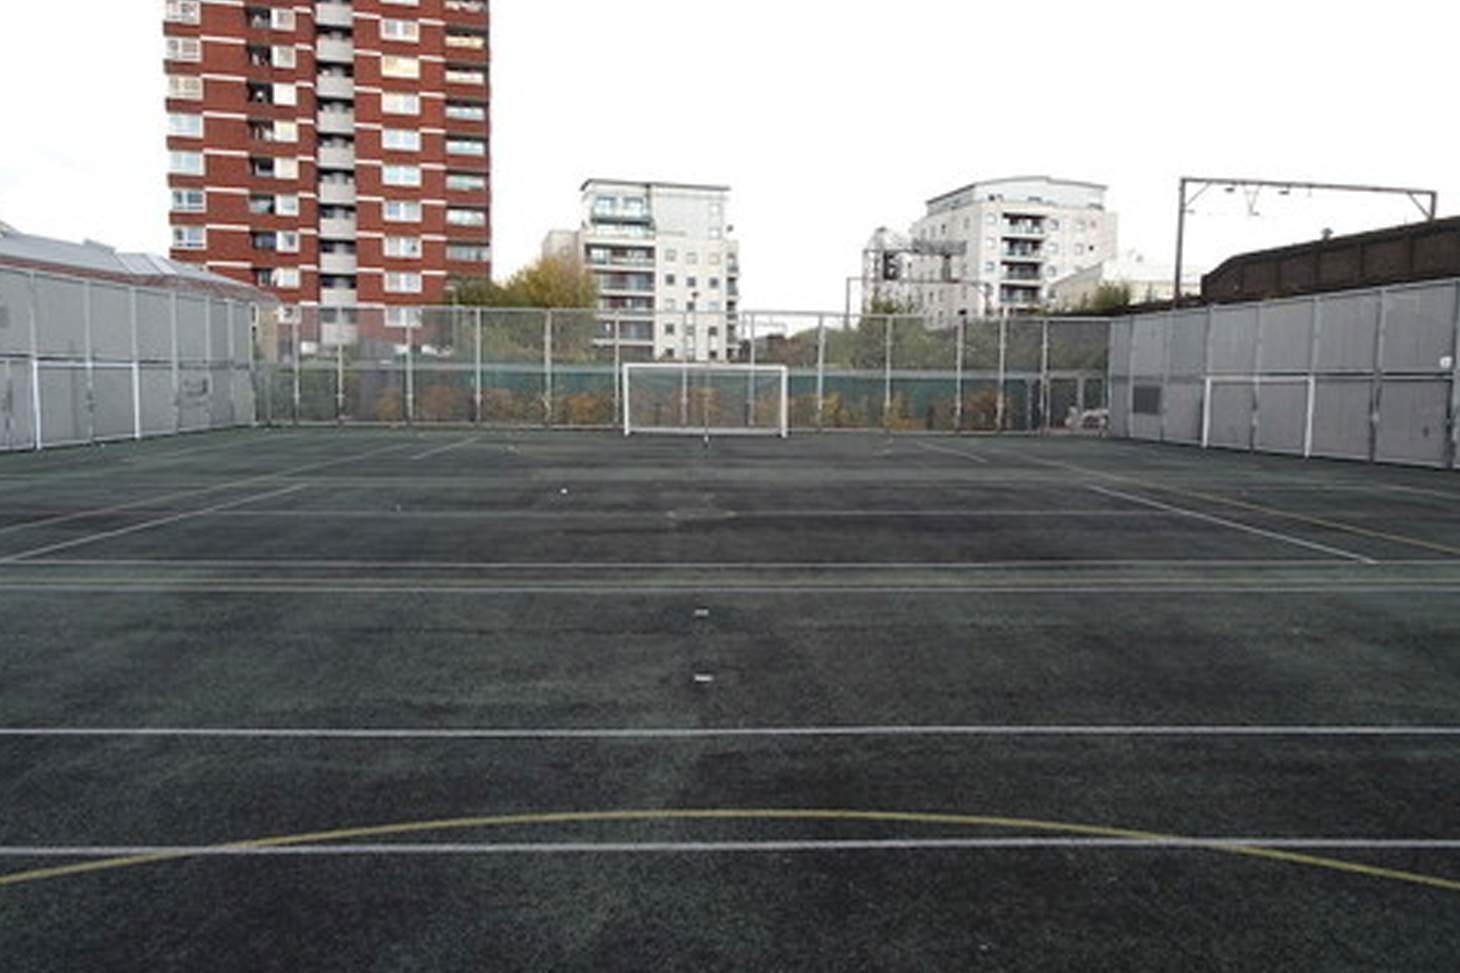 Bishop Challoner Catholic Federation of Schools 7 a side | Concrete football pitch